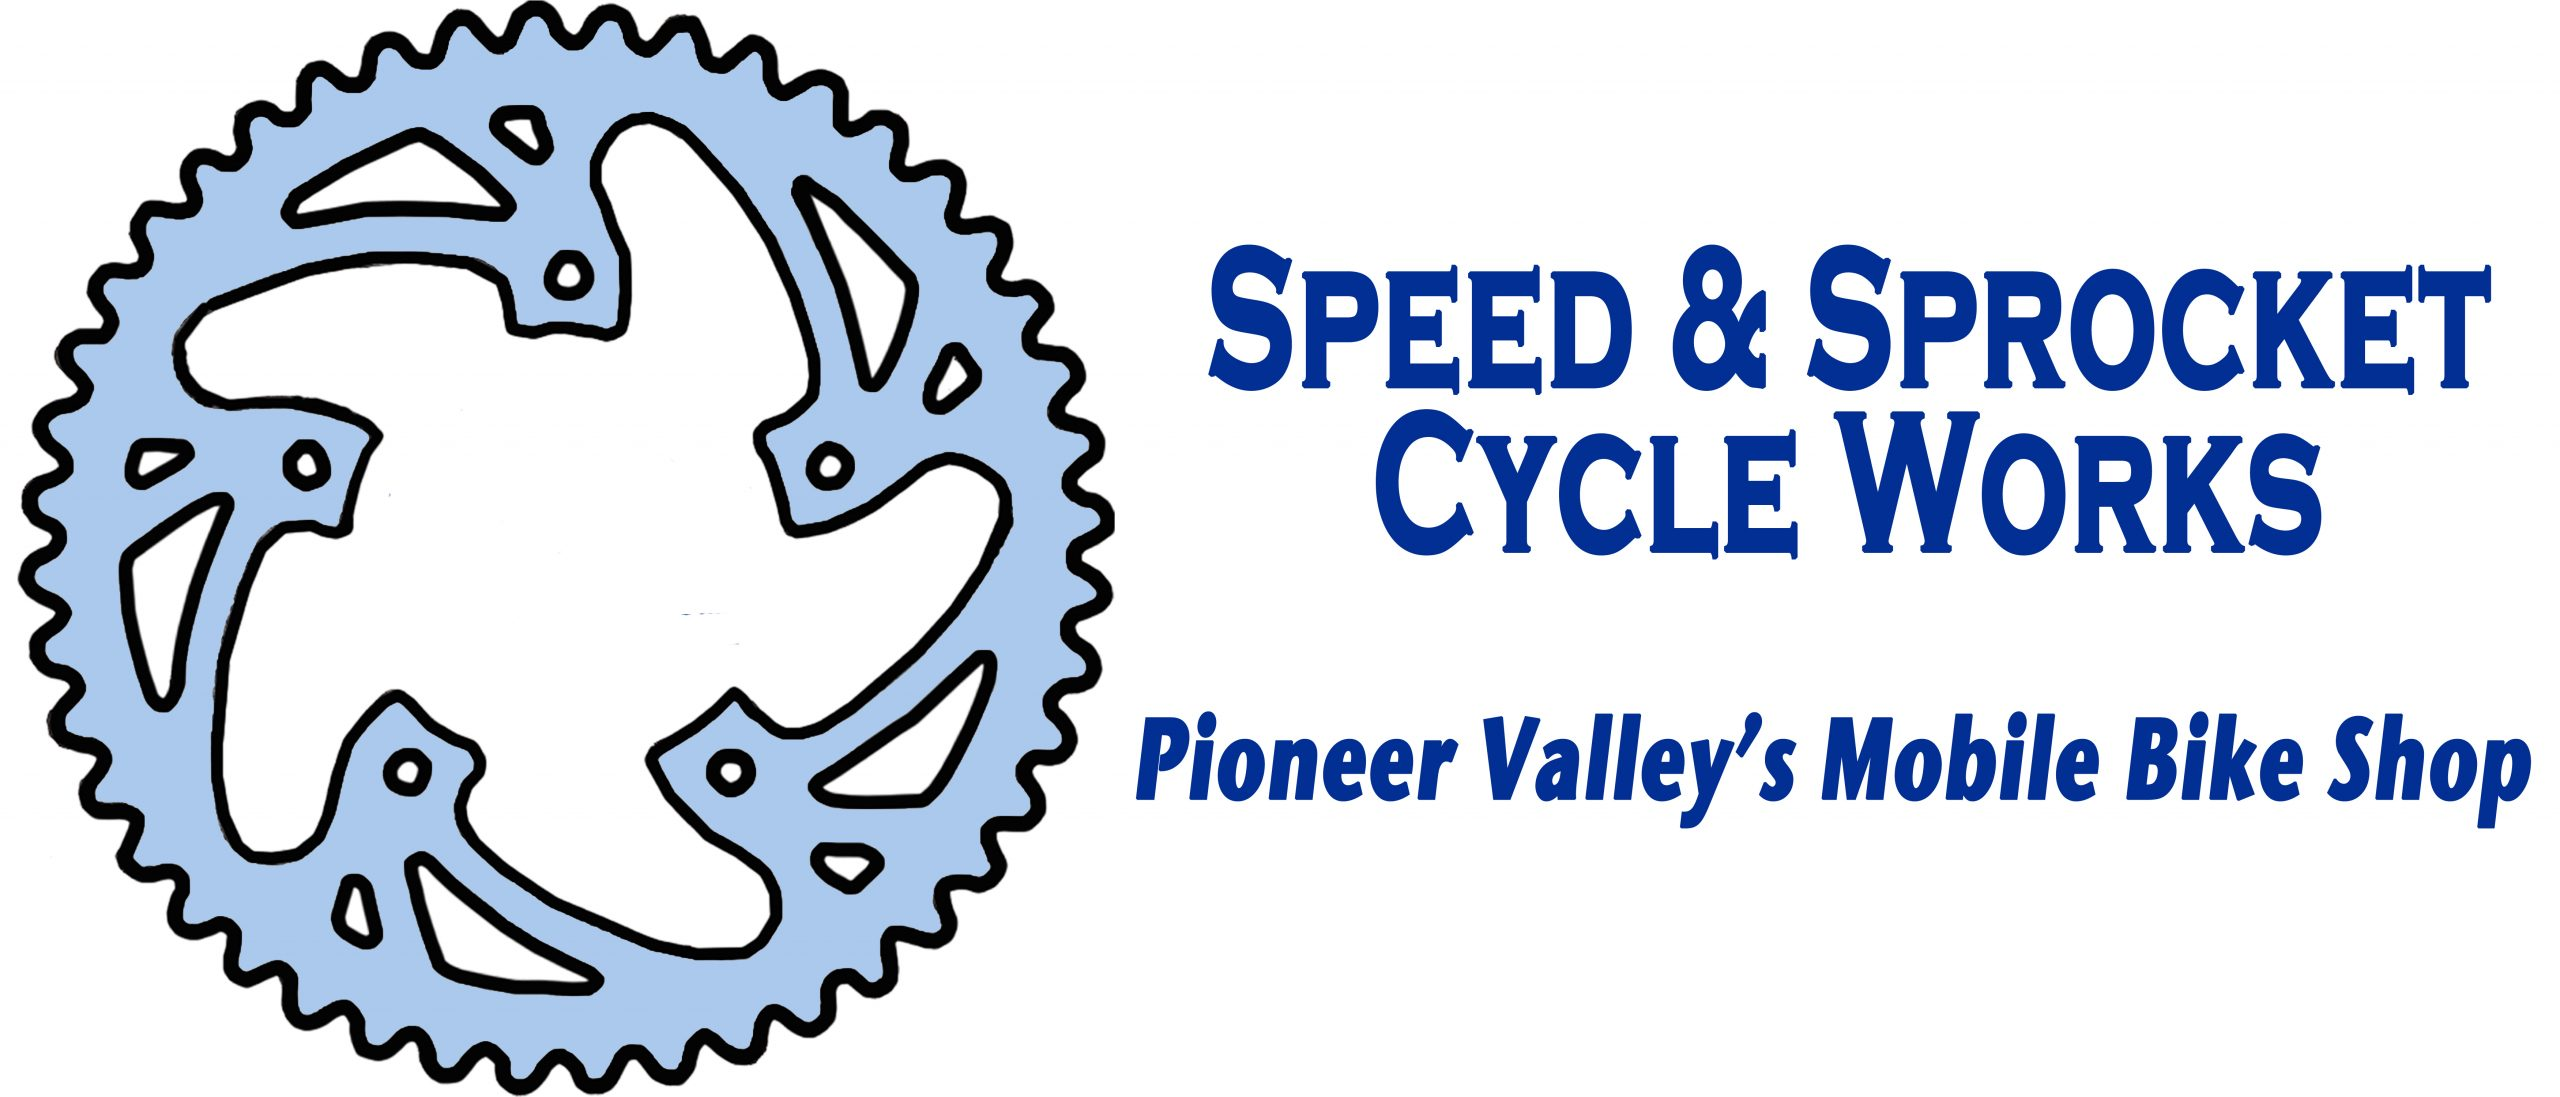 Speed & Sprocket Cycle Works